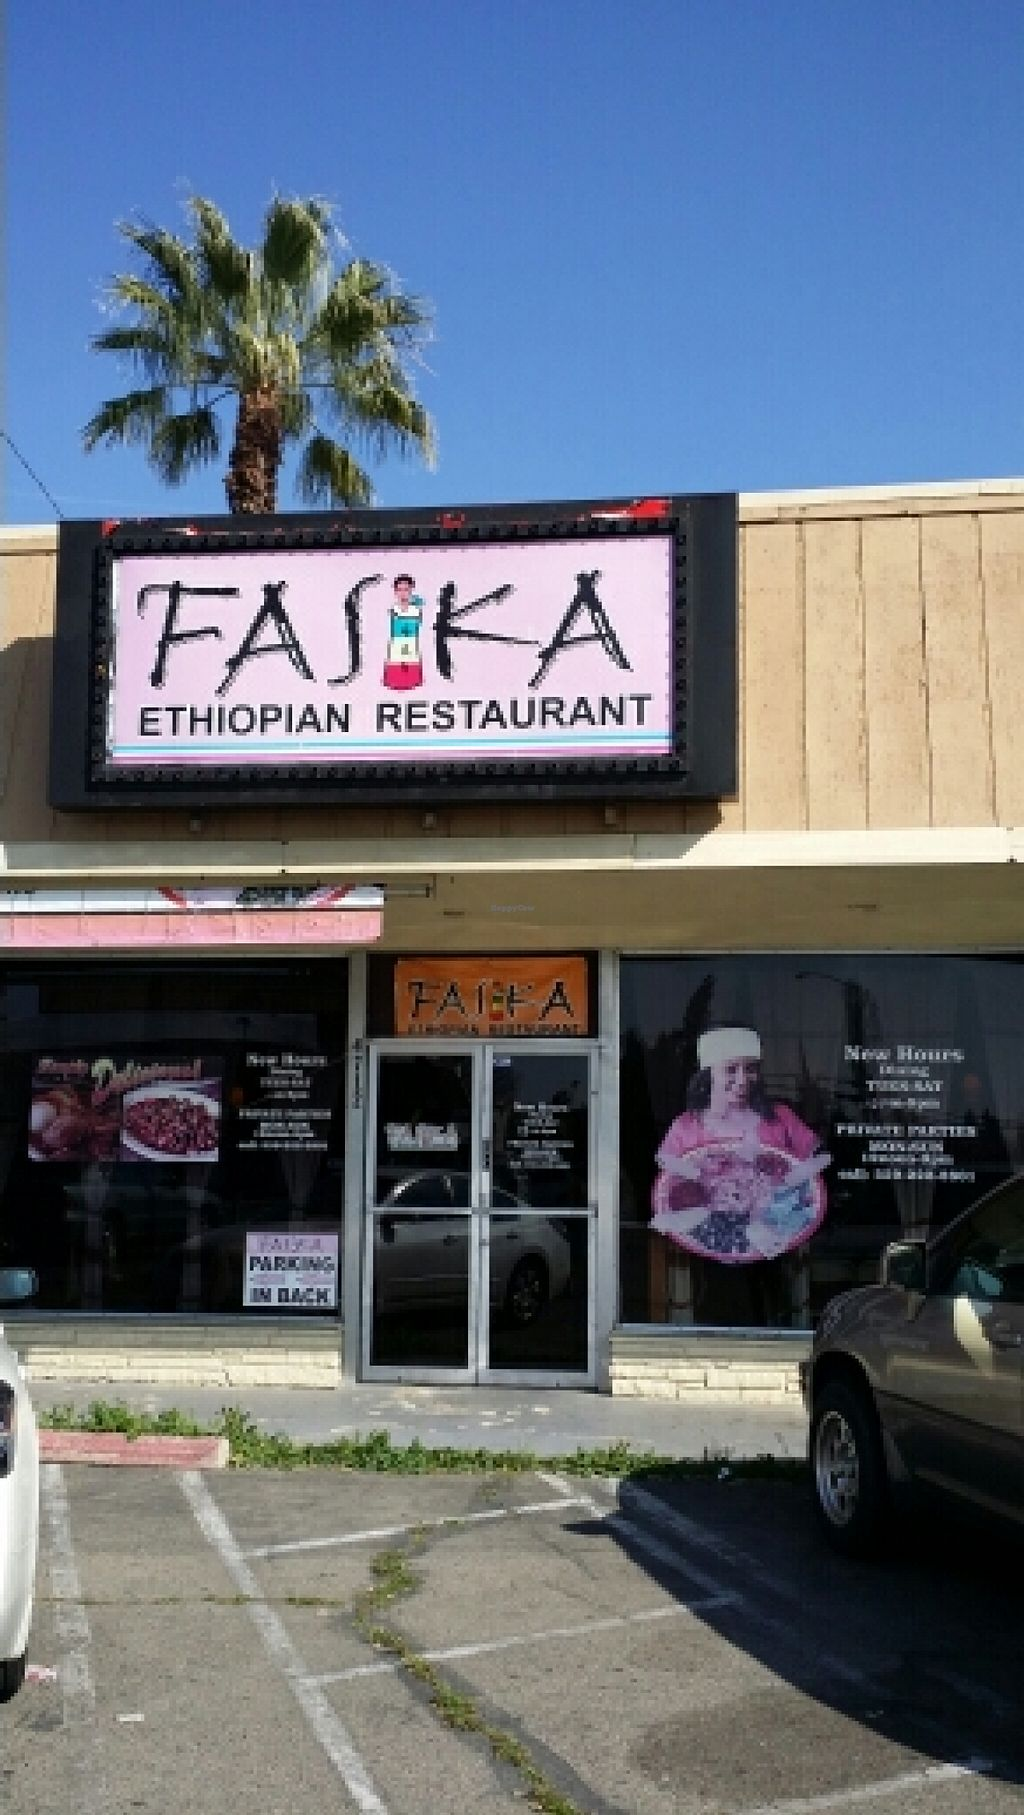 """Photo of Fasika Ethiopian Restaurant  by <a href=""""/members/profile/catbone"""">catbone</a> <br/>Storefront  <br/> March 16, 2016  - <a href='/contact/abuse/image/54385/140179'>Report</a>"""